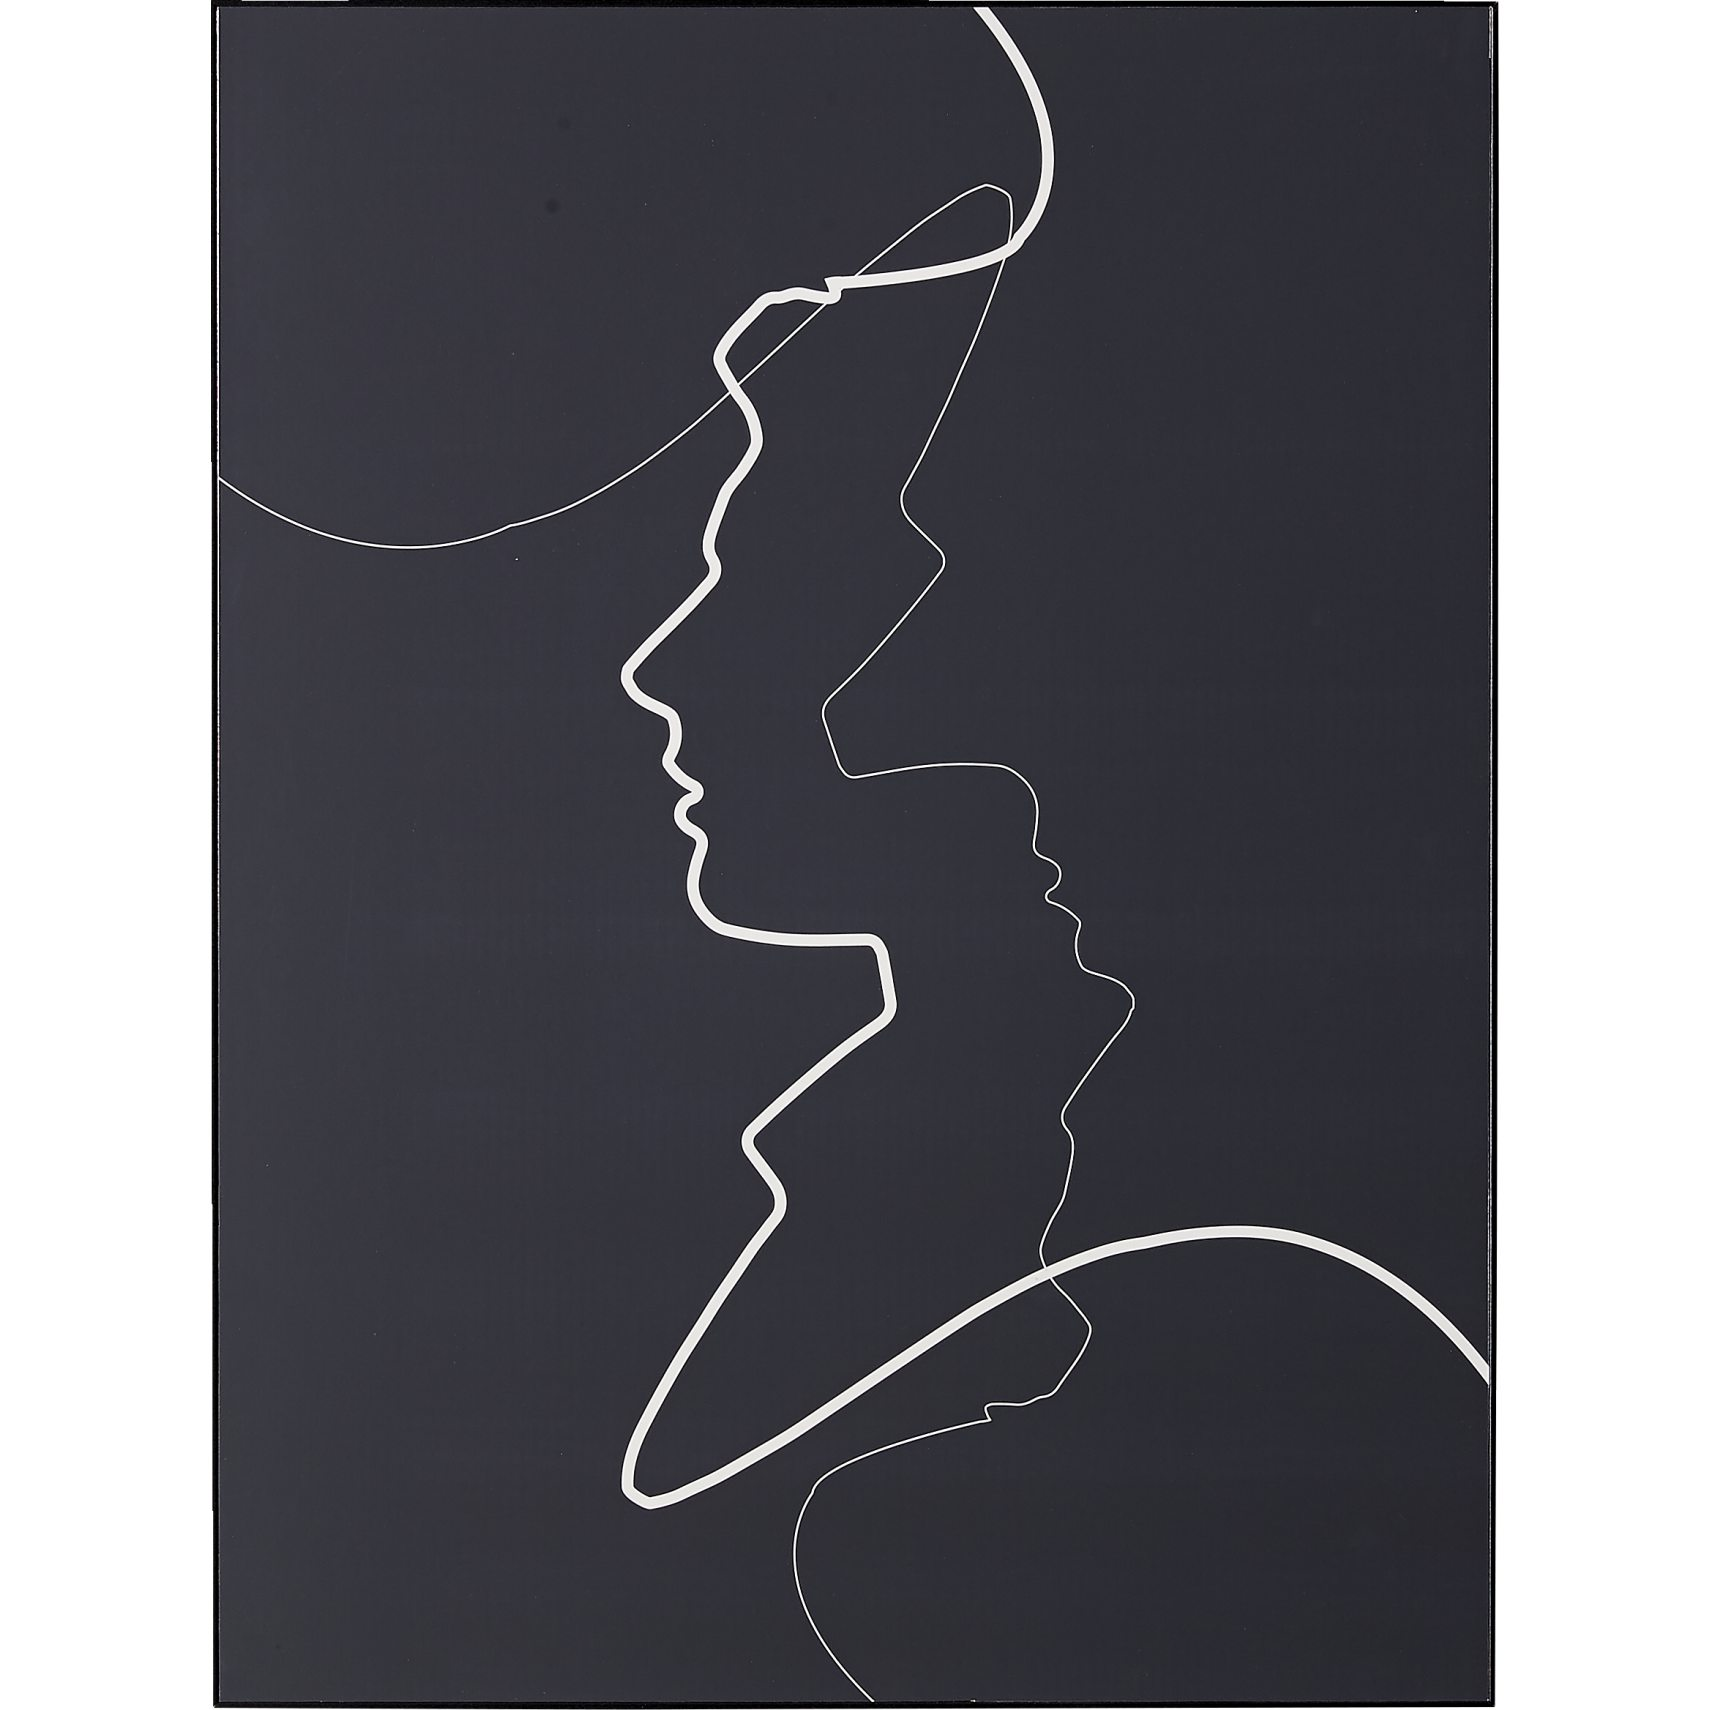 Together Male Plakat 60 x 80 x 7 cm - Blank